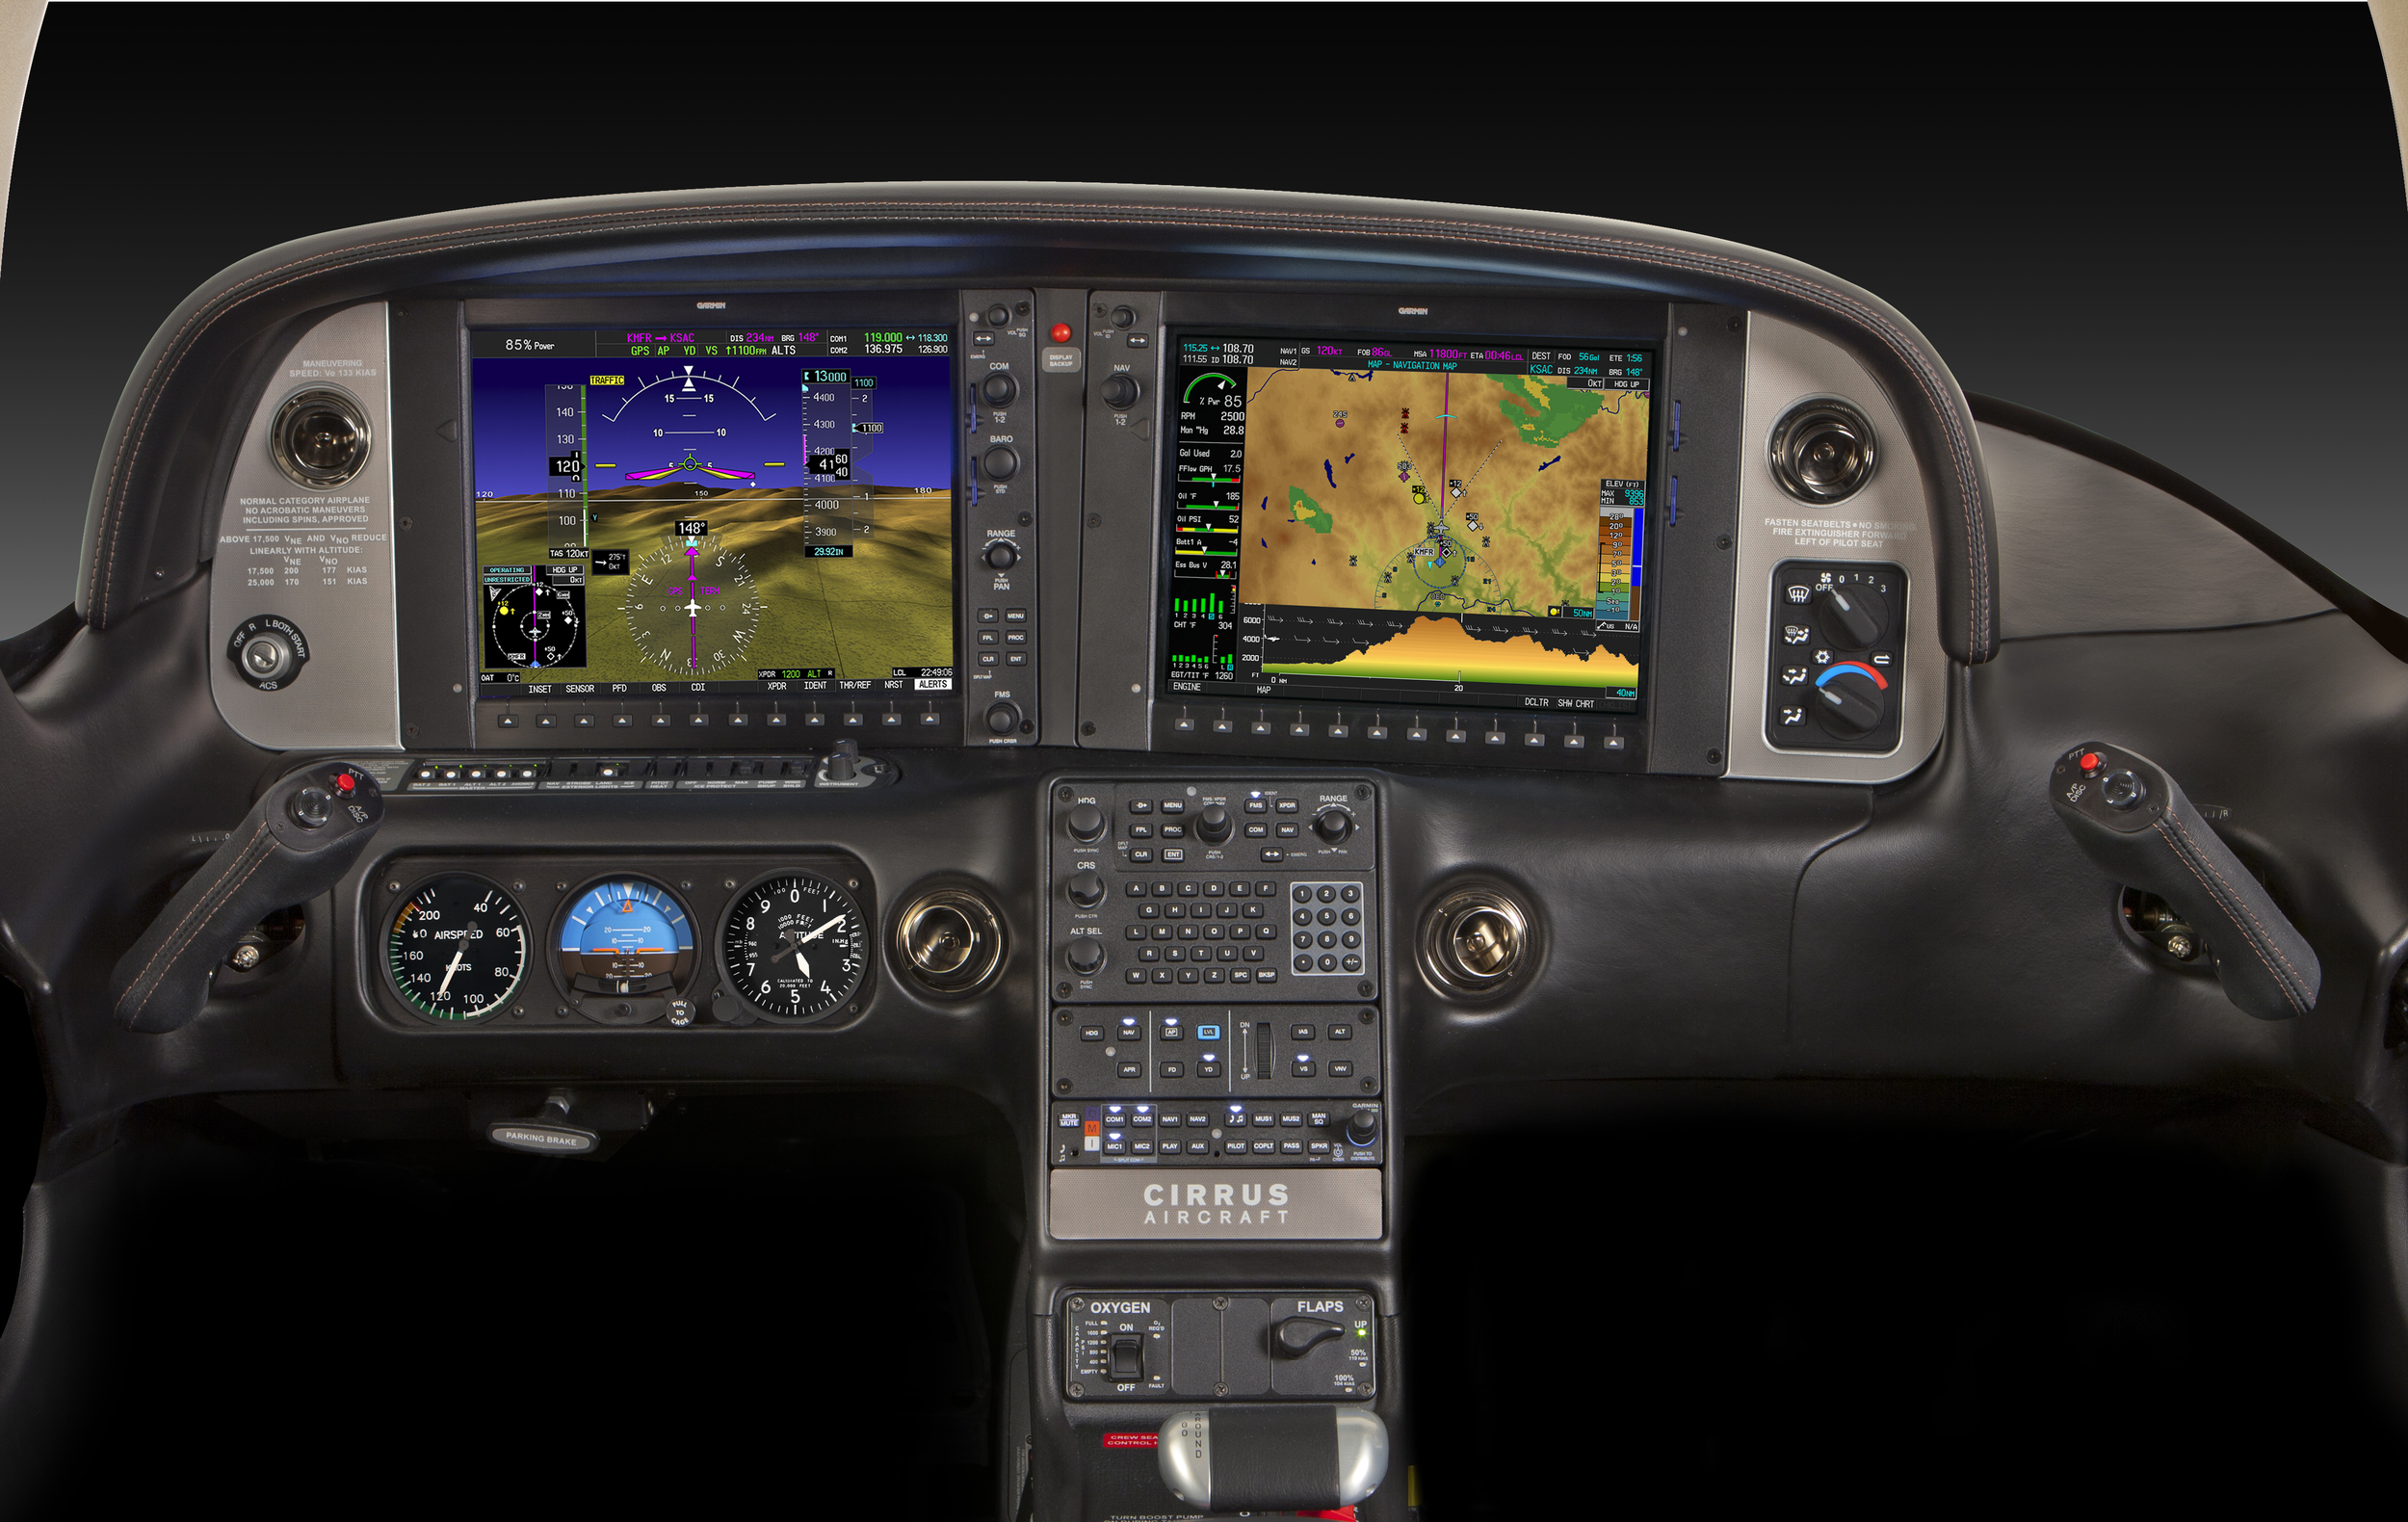 The Cirrus Perspective - Garmin aviation innovation technology